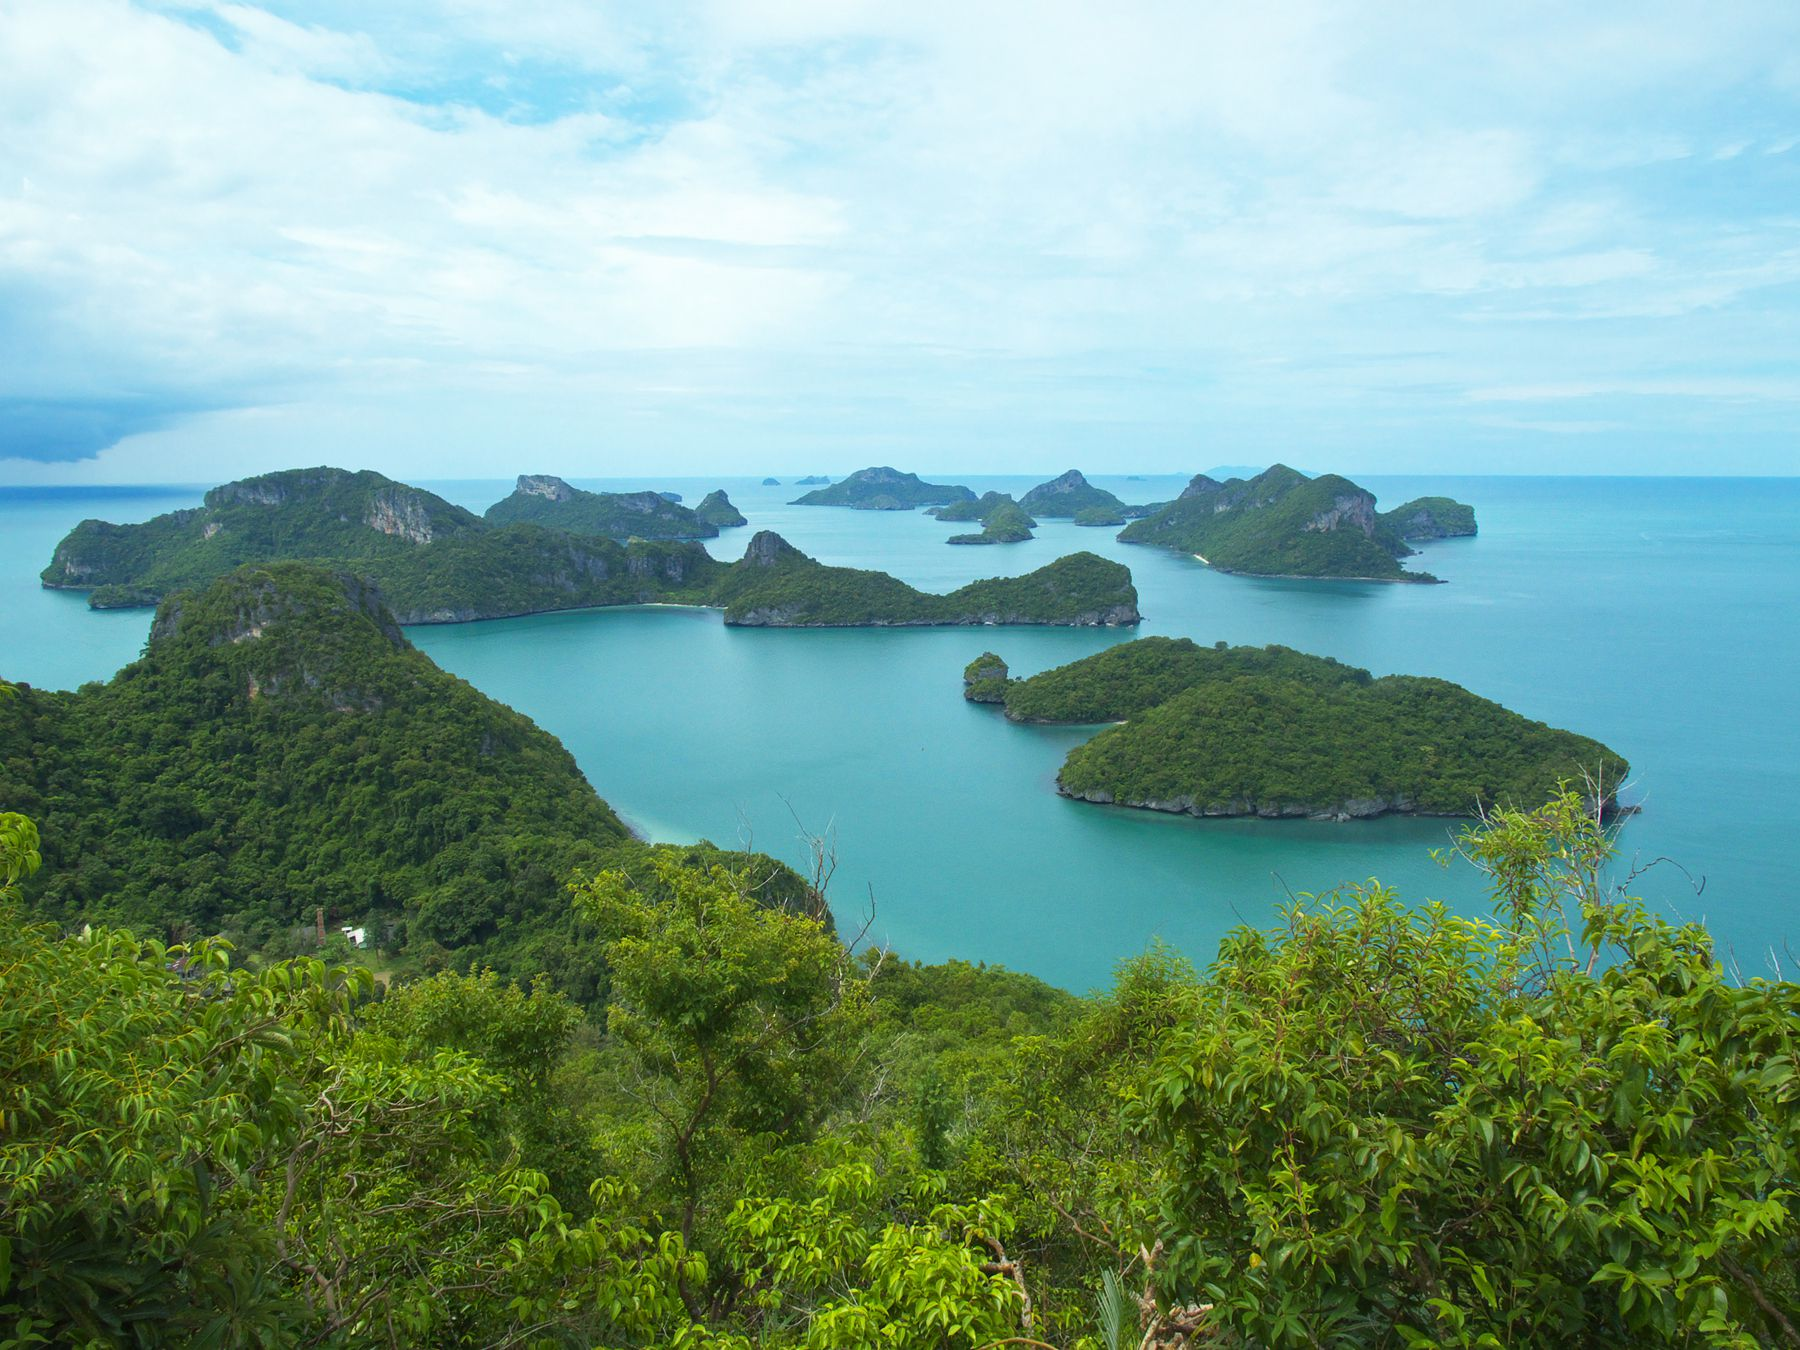 Islands Of The Koh Samui Archipelago